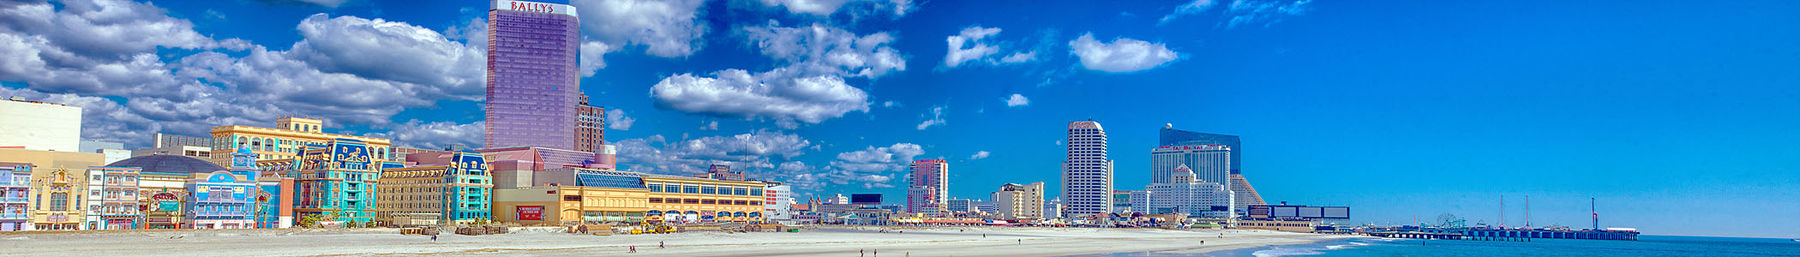 Atlantic City NJ Wikivoyage Banner.jpg